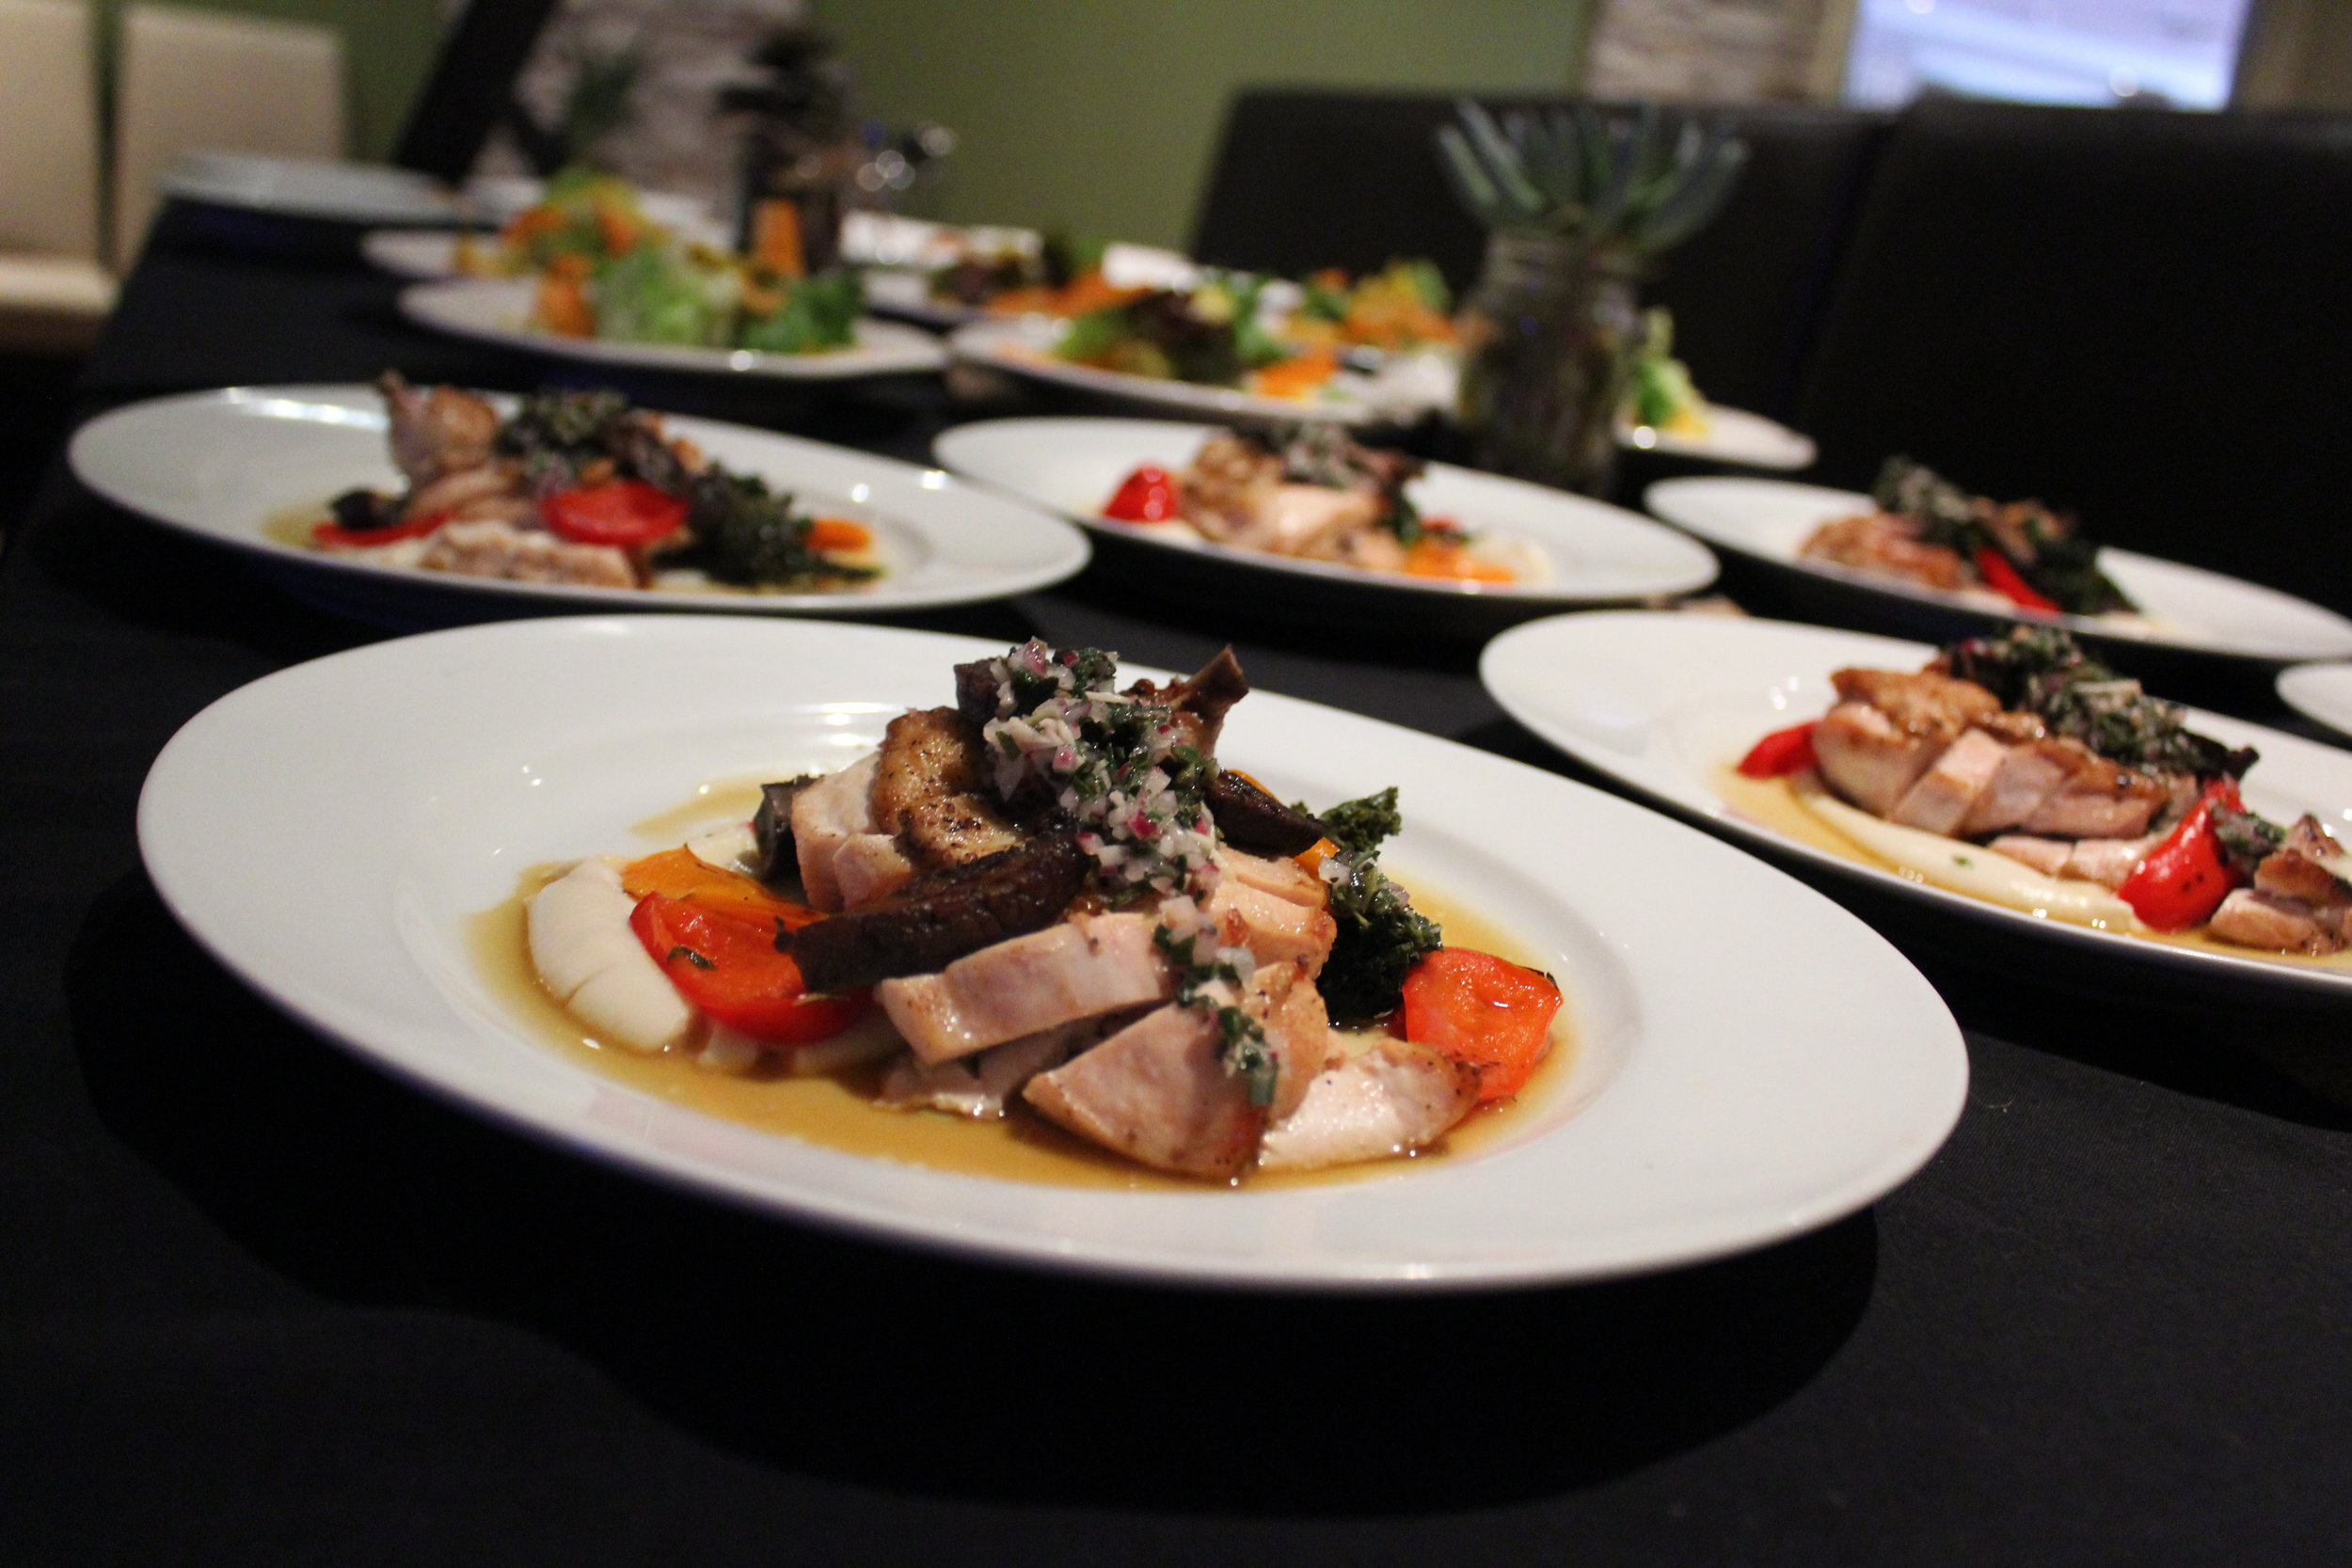 fresh-catering-delivery-scratch-keto-organic-office-catering-kansas-city-overland-park15.JPG